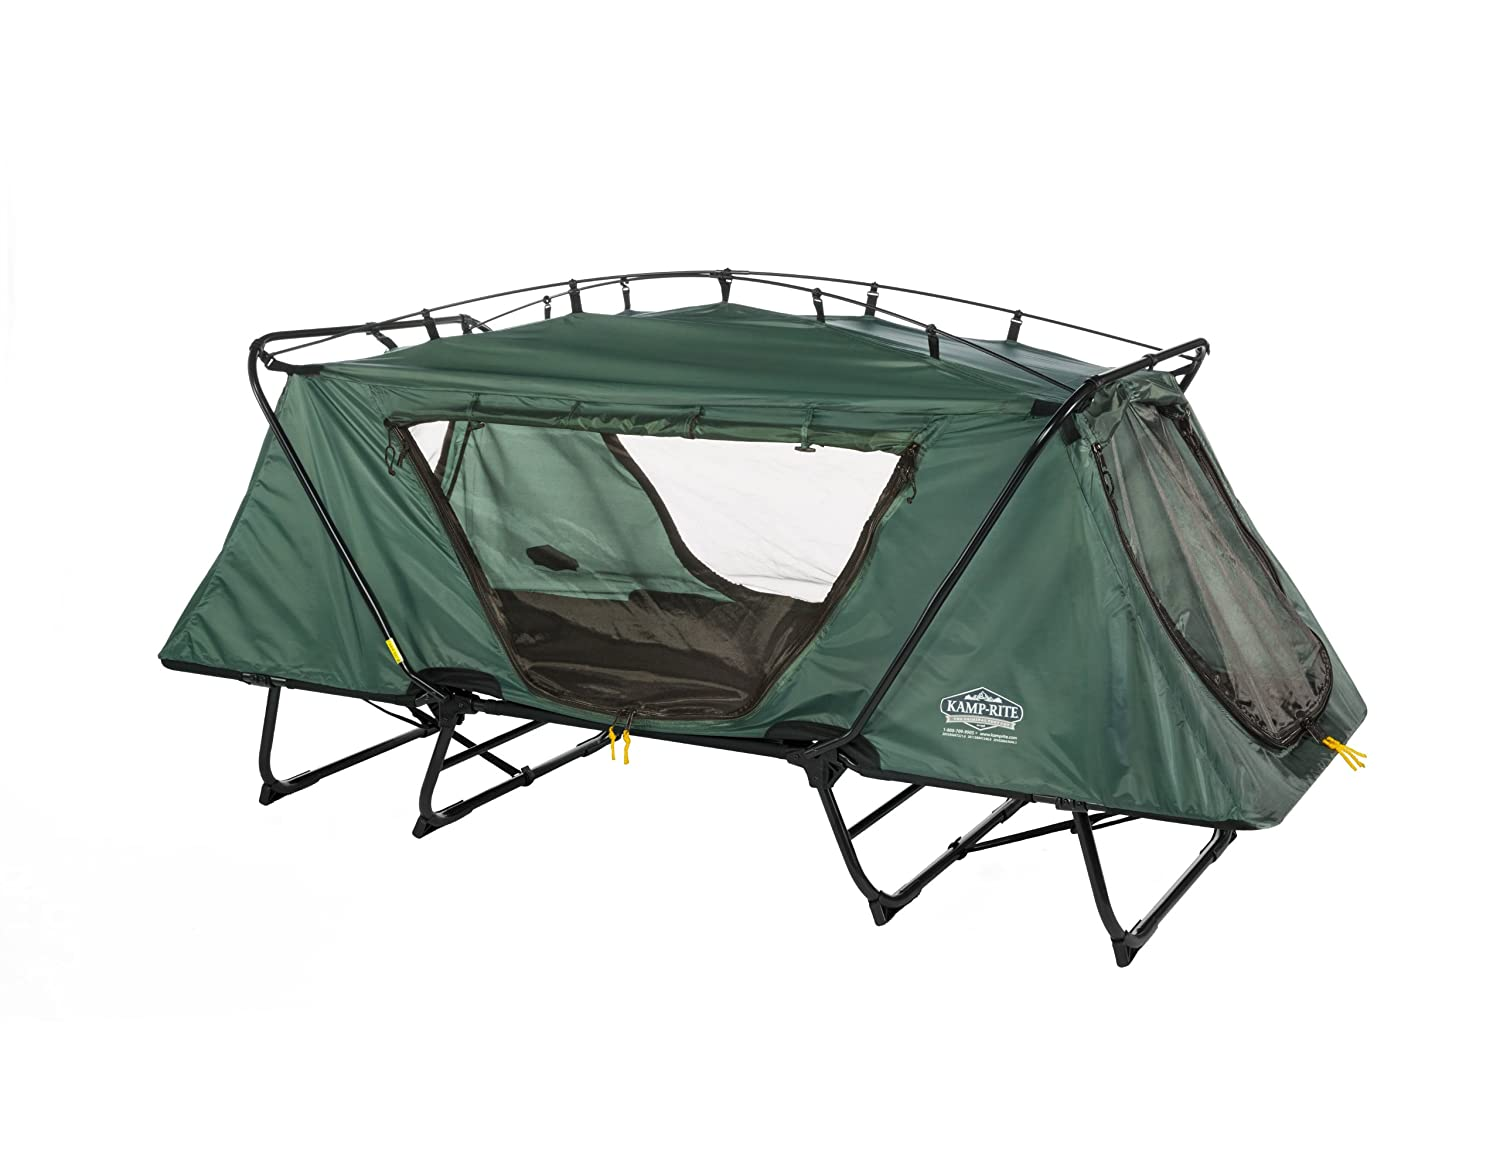 K&-Rite Oversize Tent Cot  sc 1 st  The C&ing Trips & The Best Tents for Rain - Wet-weather Camping Essentials